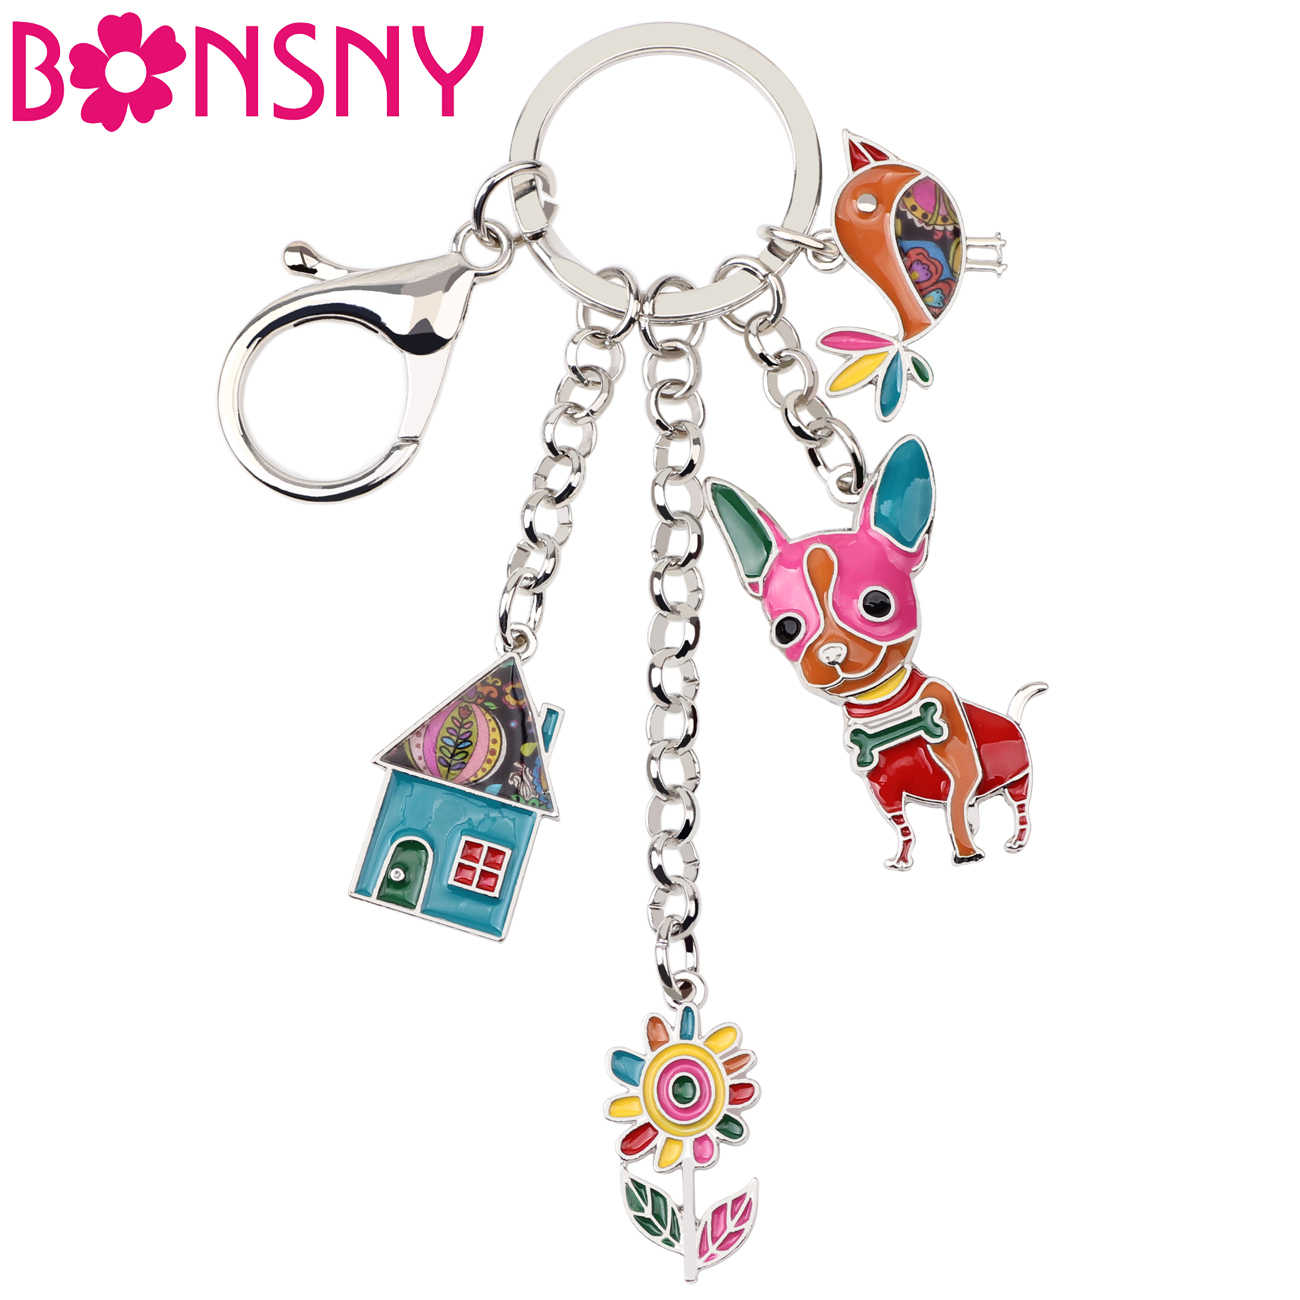 Bonsny Enamel Metal Chihuahua Dog Bird Flower House Key Chain Key Ring Bag Handbag Charm Man Key Holder Jewelry For Women